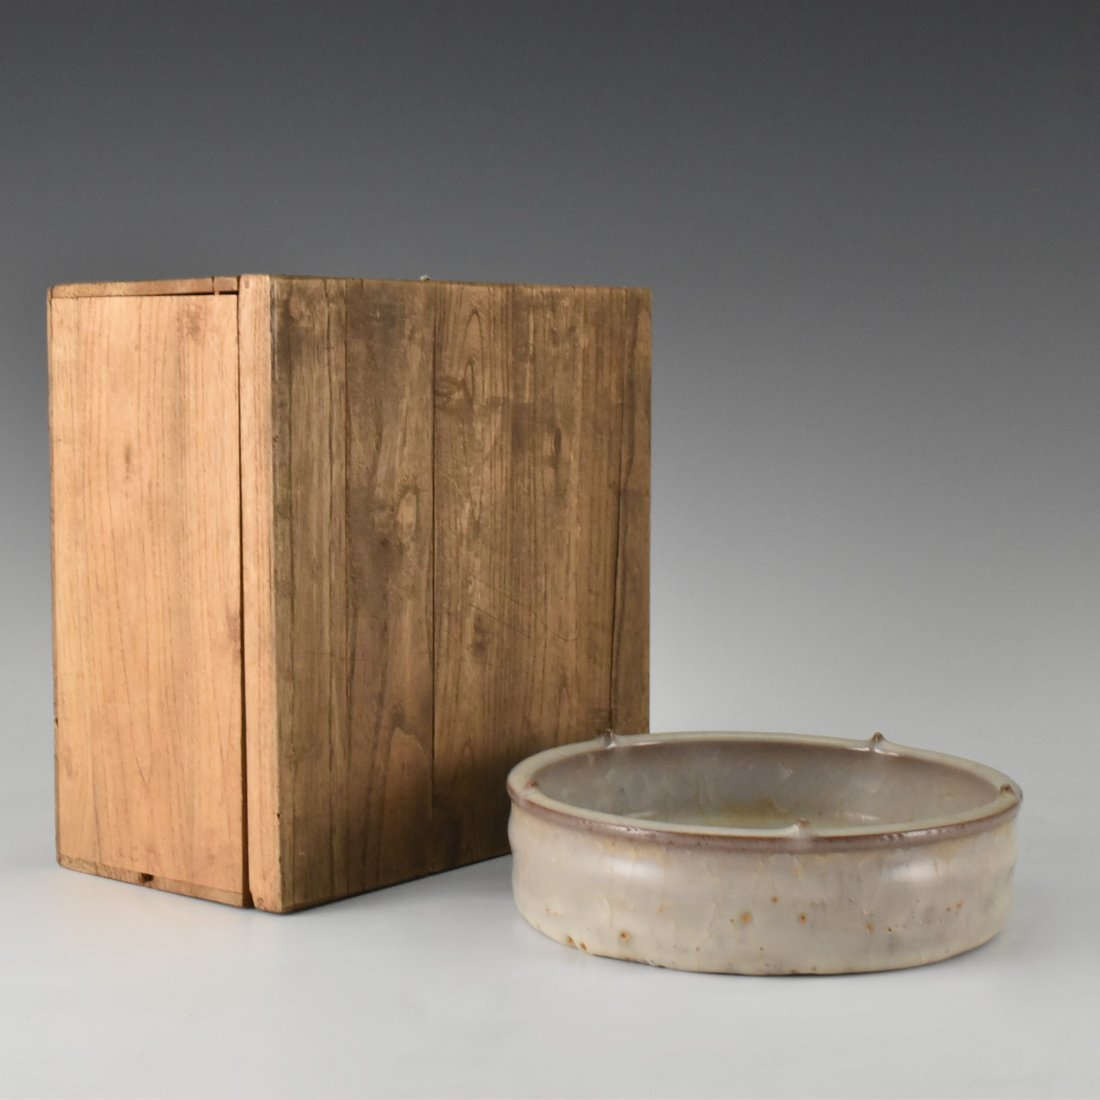 GUAN TYPE BOWL WITH WOODEN BOX